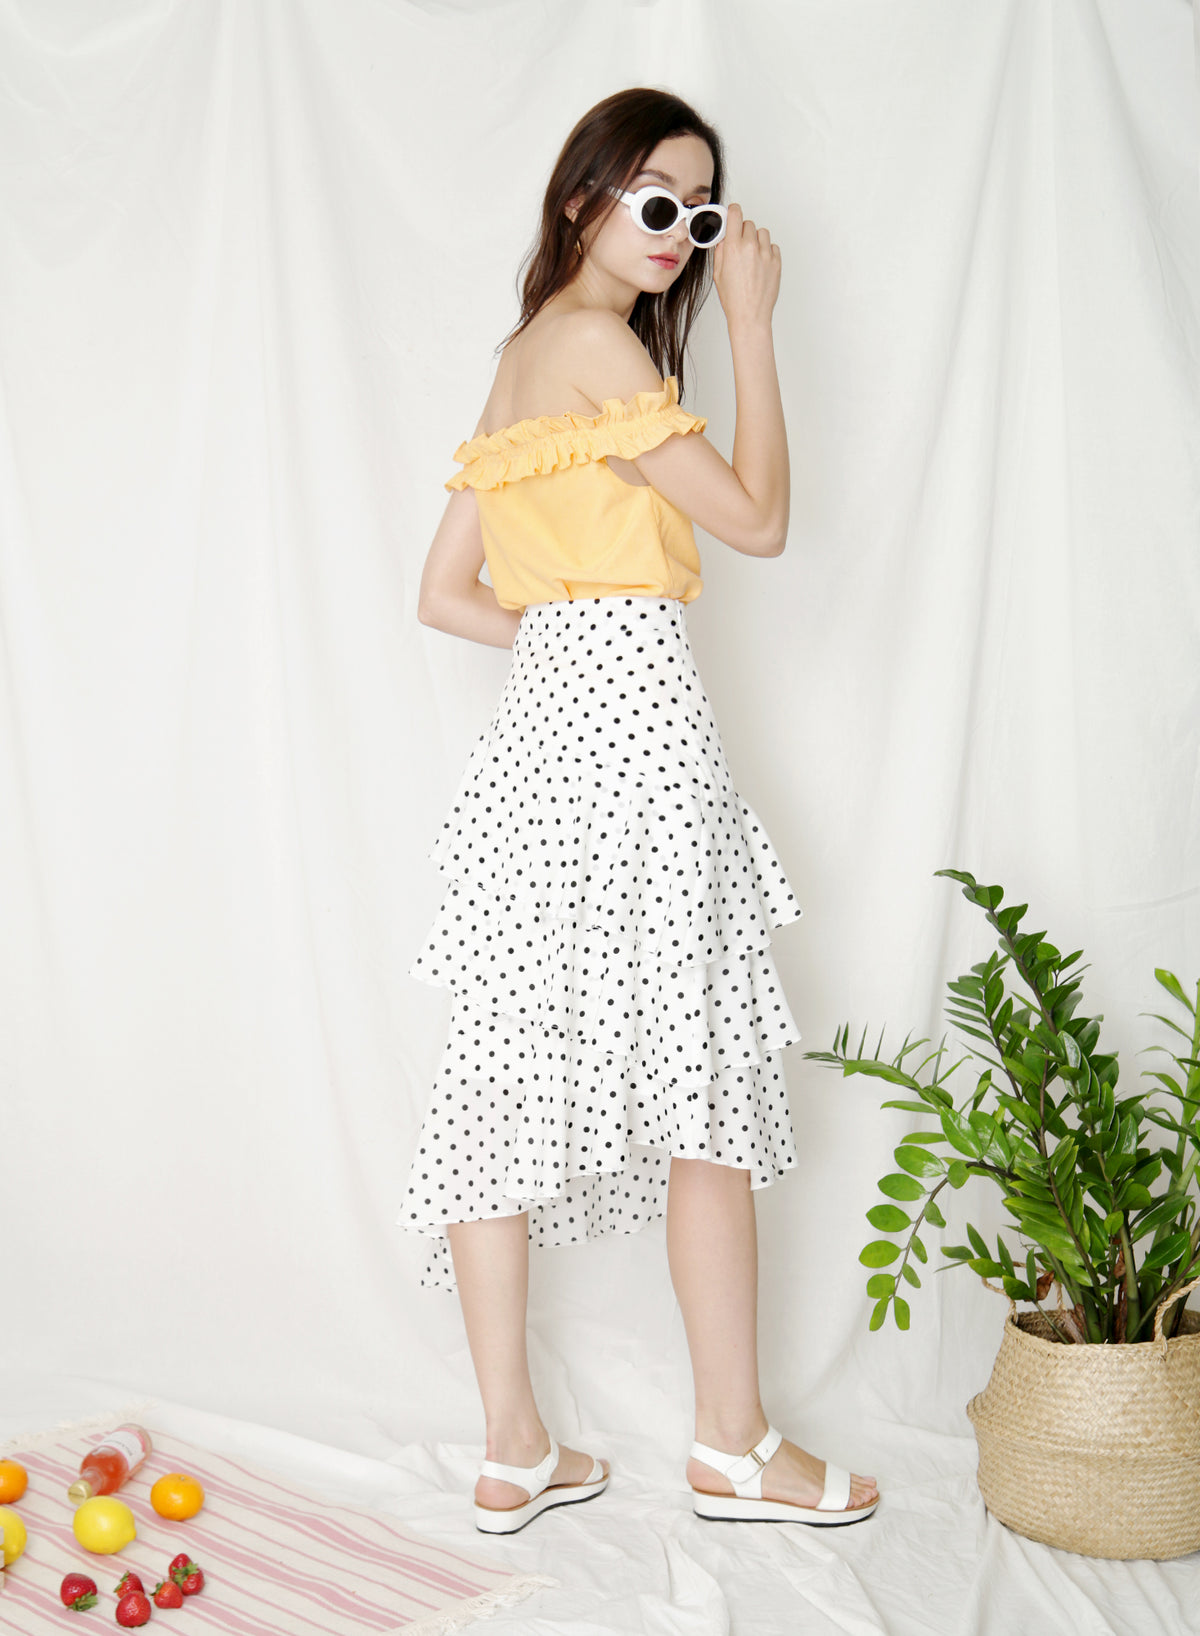 Pirouette Ruffle Tiers Skirt (White Polka) at $ 39.50 only sold at And Well Dressed Online Fashion Store Singapore